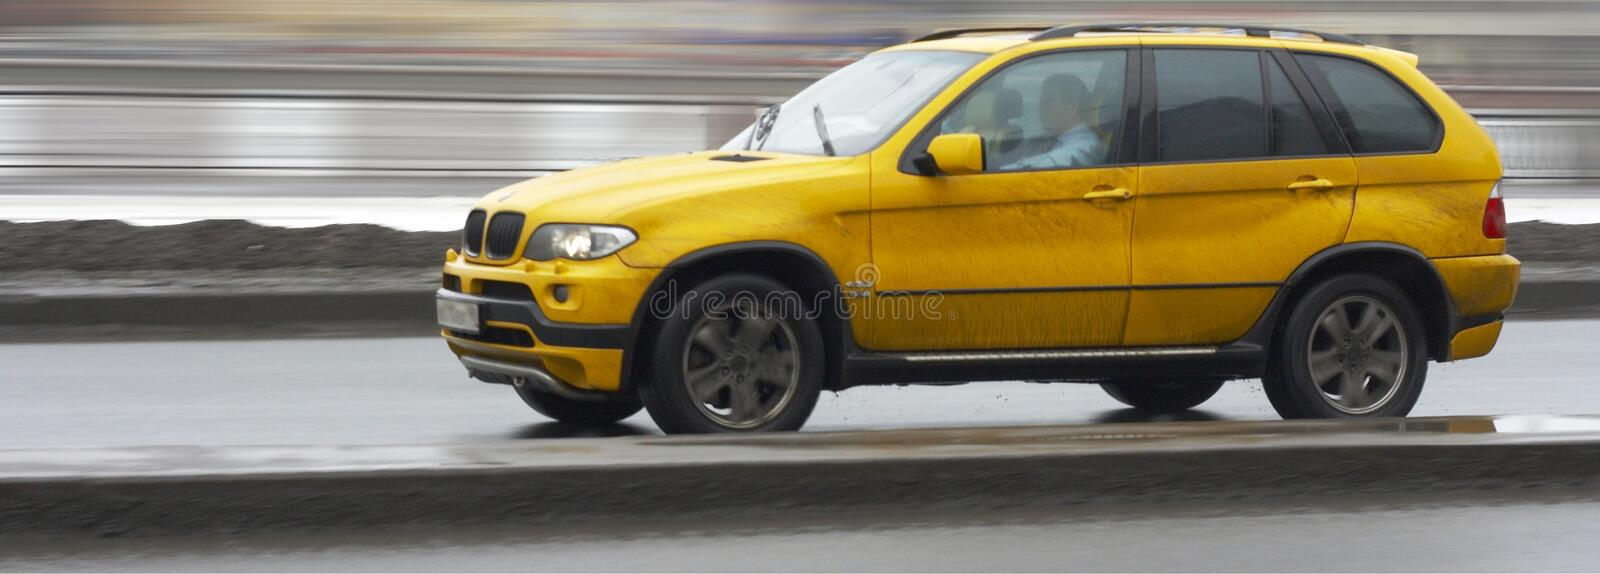 Yellow suv x5 luxury german car, driving fast. A yellow suv x5 luxury german car, driving fast stock image